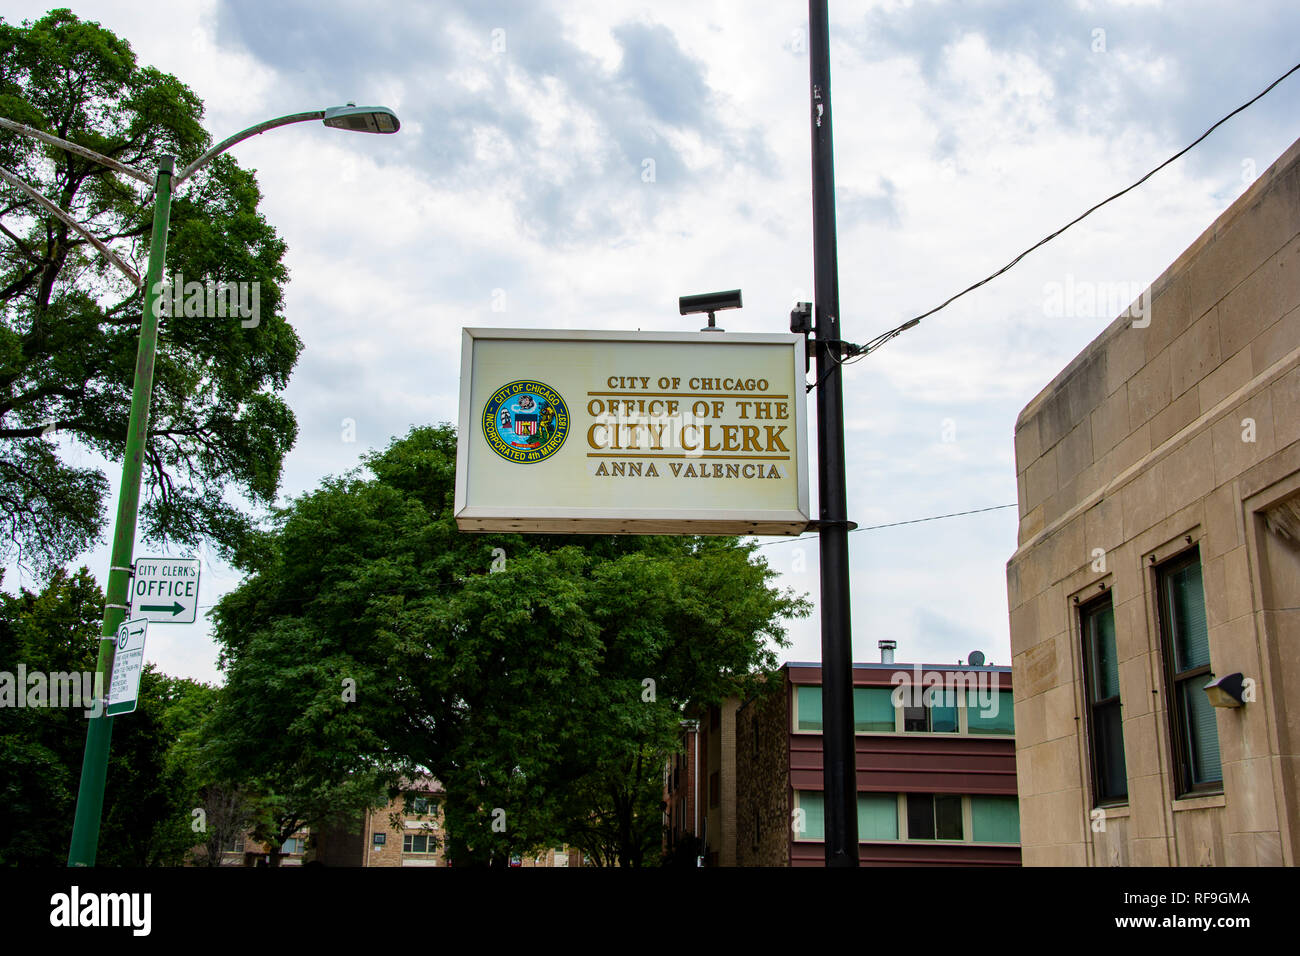 Chicago, Illinois, United States - August 9, 2018: Shot of the sign in front of the Office of the City Clerk of Chicago located in Jefferson Park, Chi - Stock Image